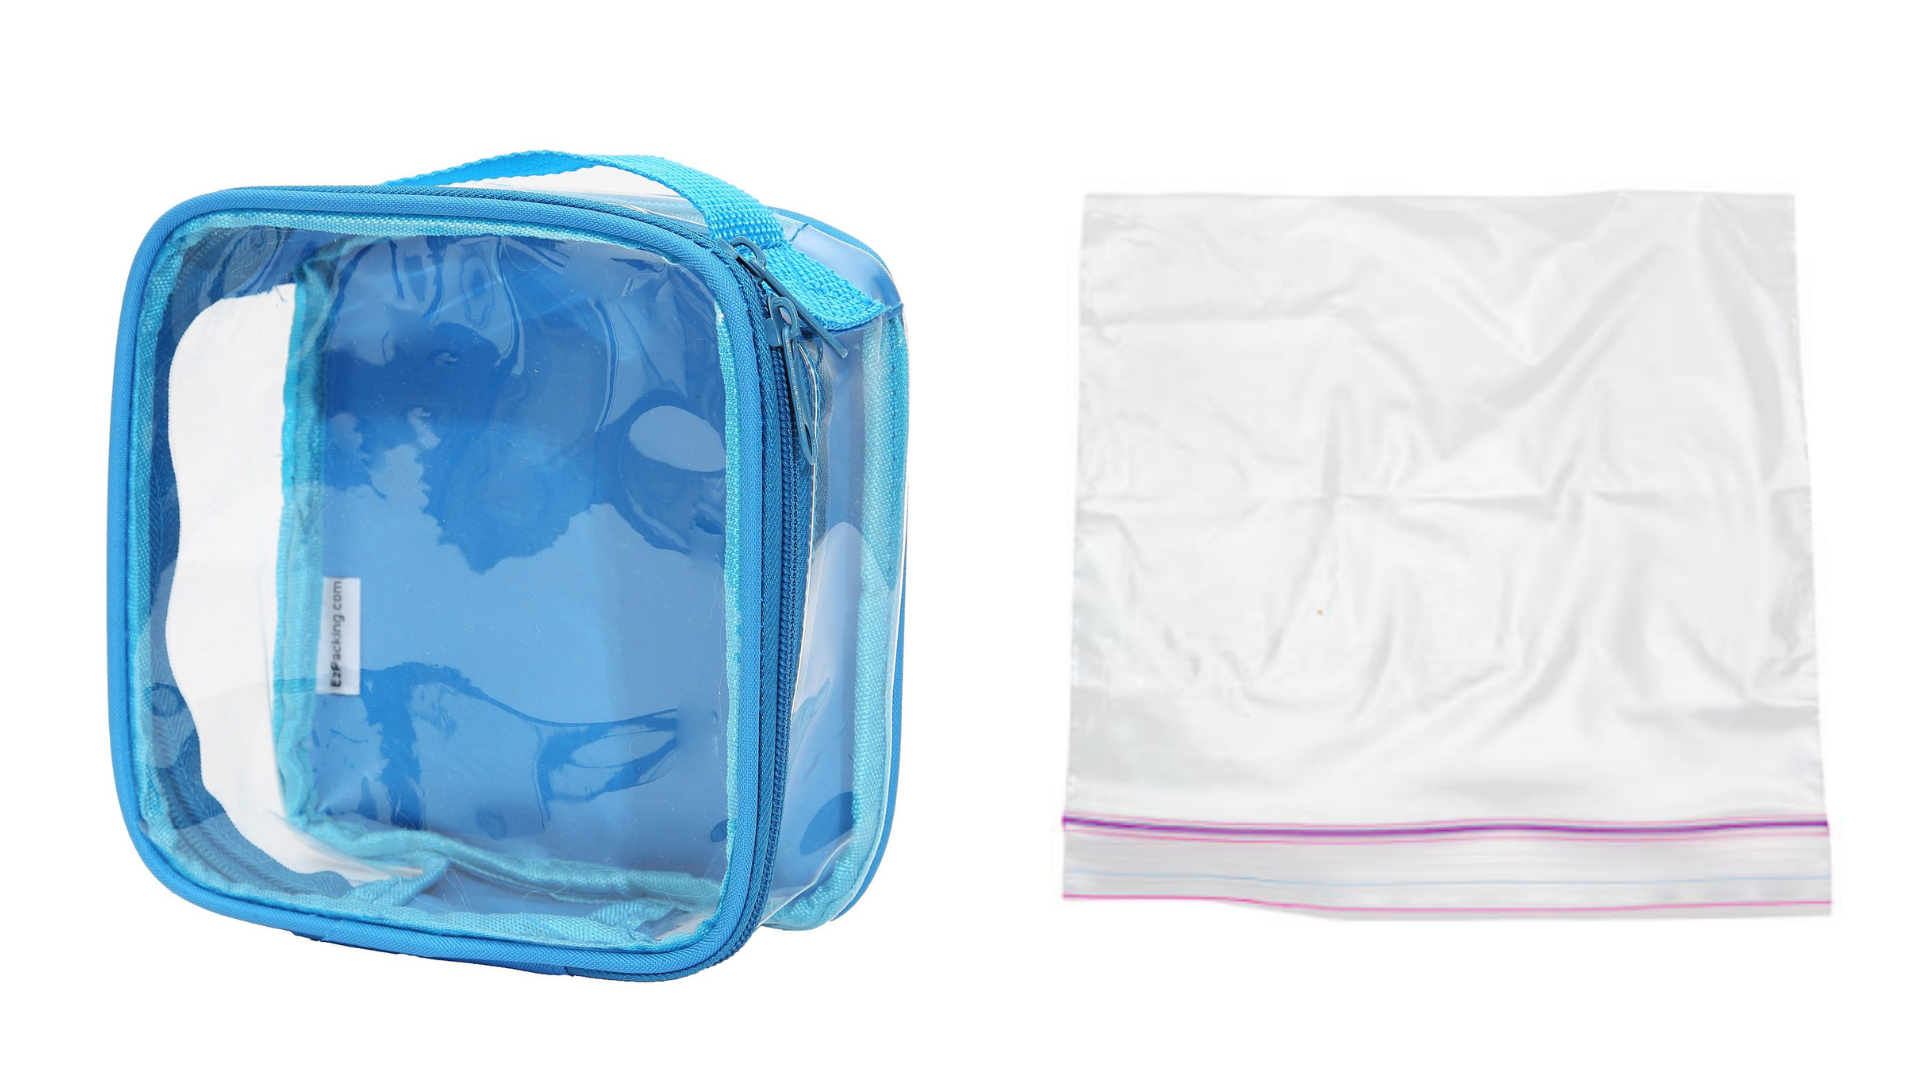 A turquoise Extra Small Cube and a Ziploc bag